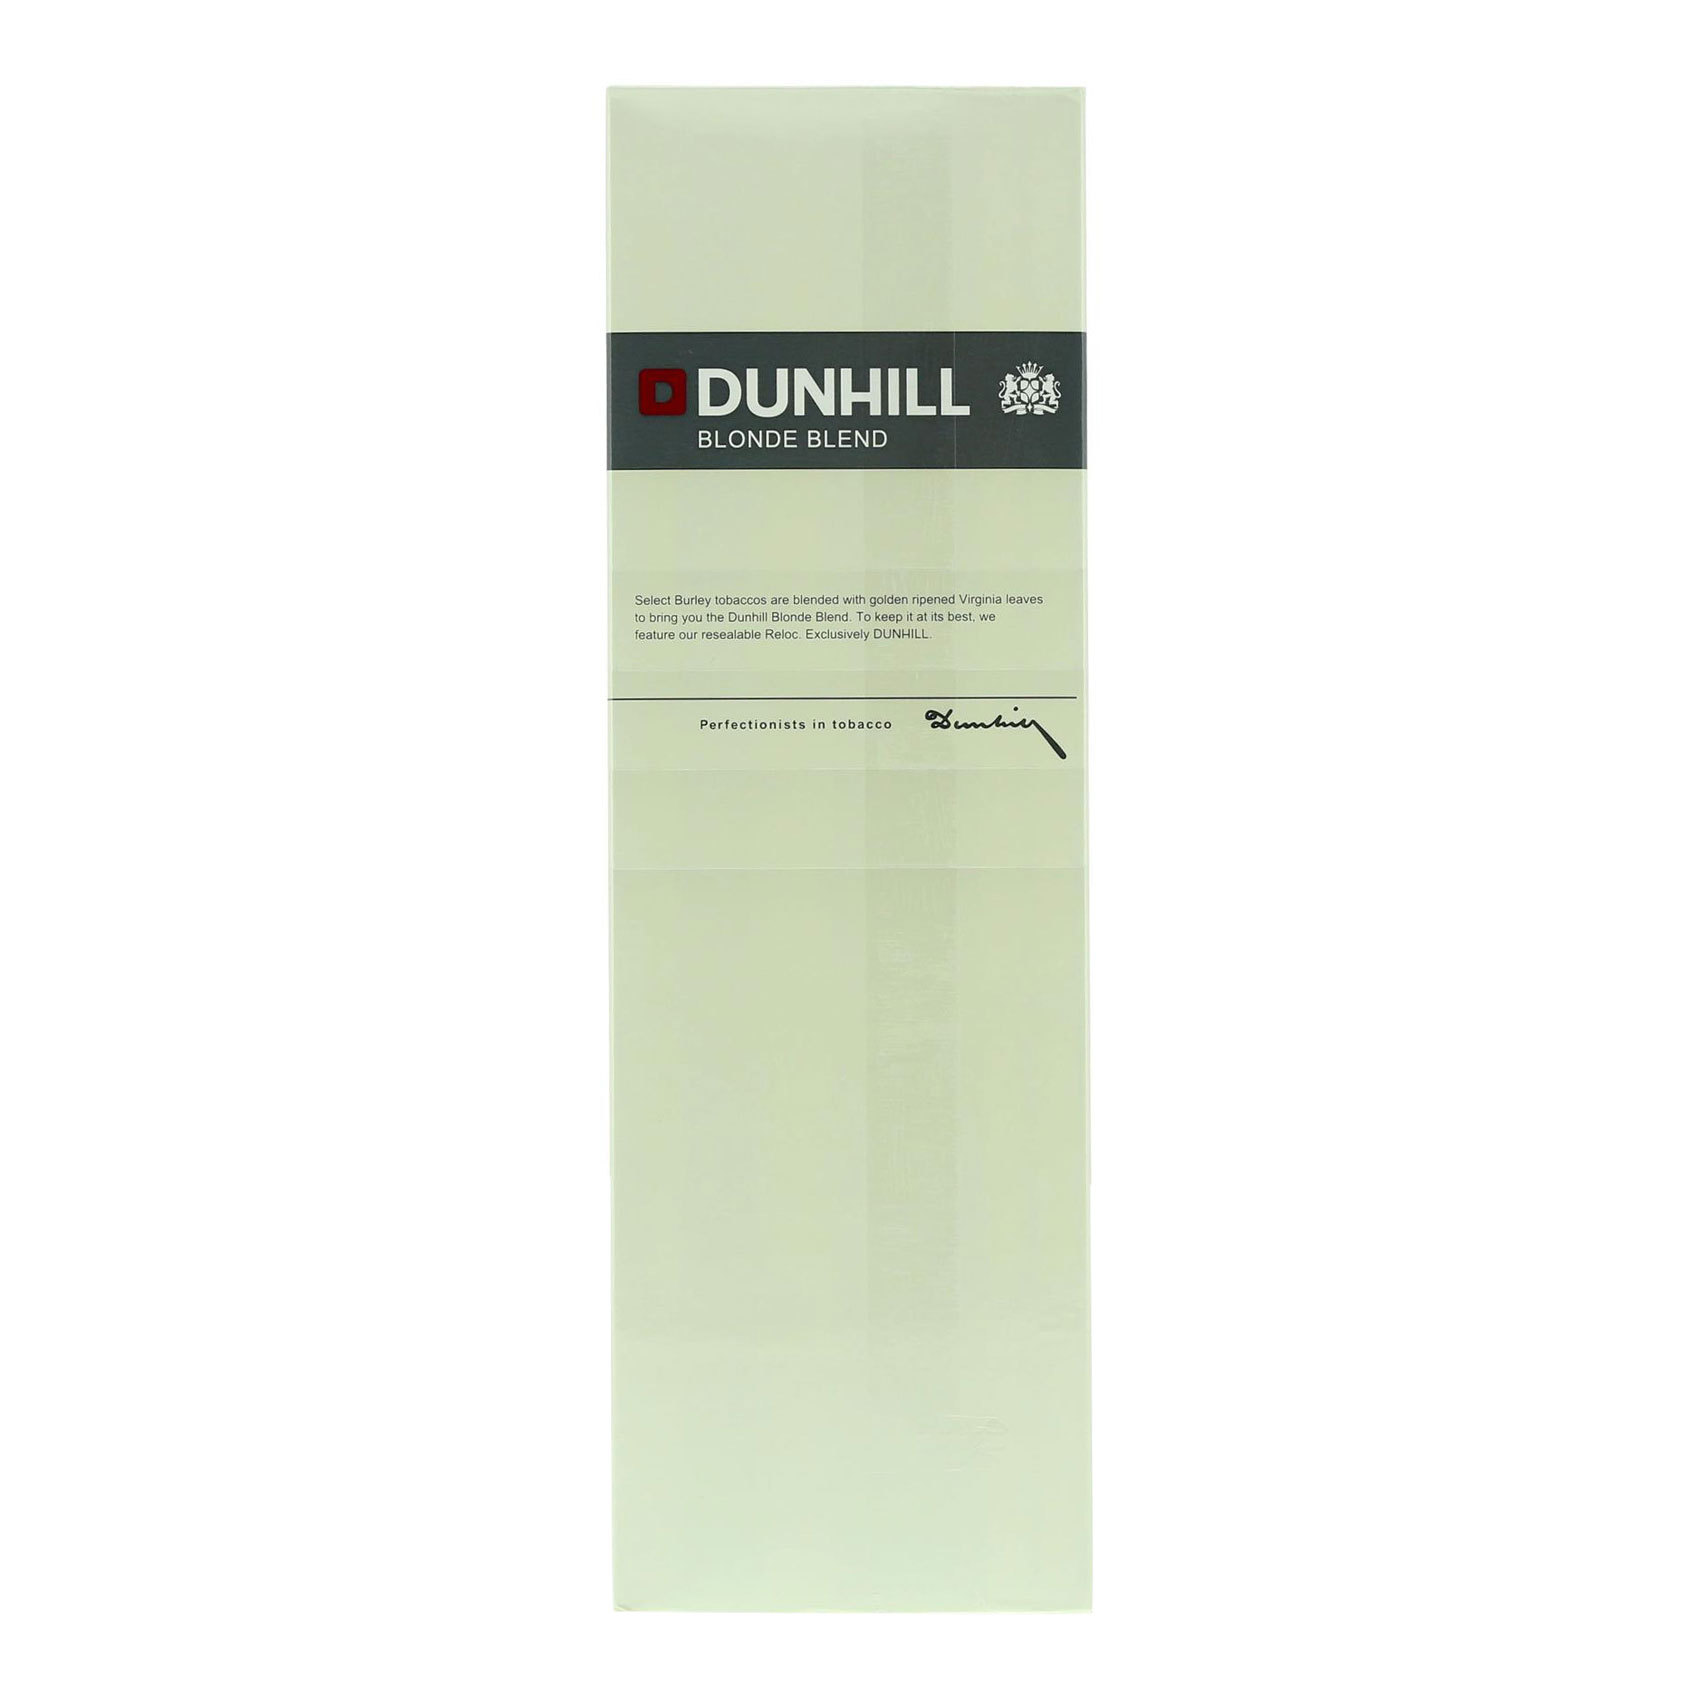 DUNHILL 1 MG WHITE 20X10